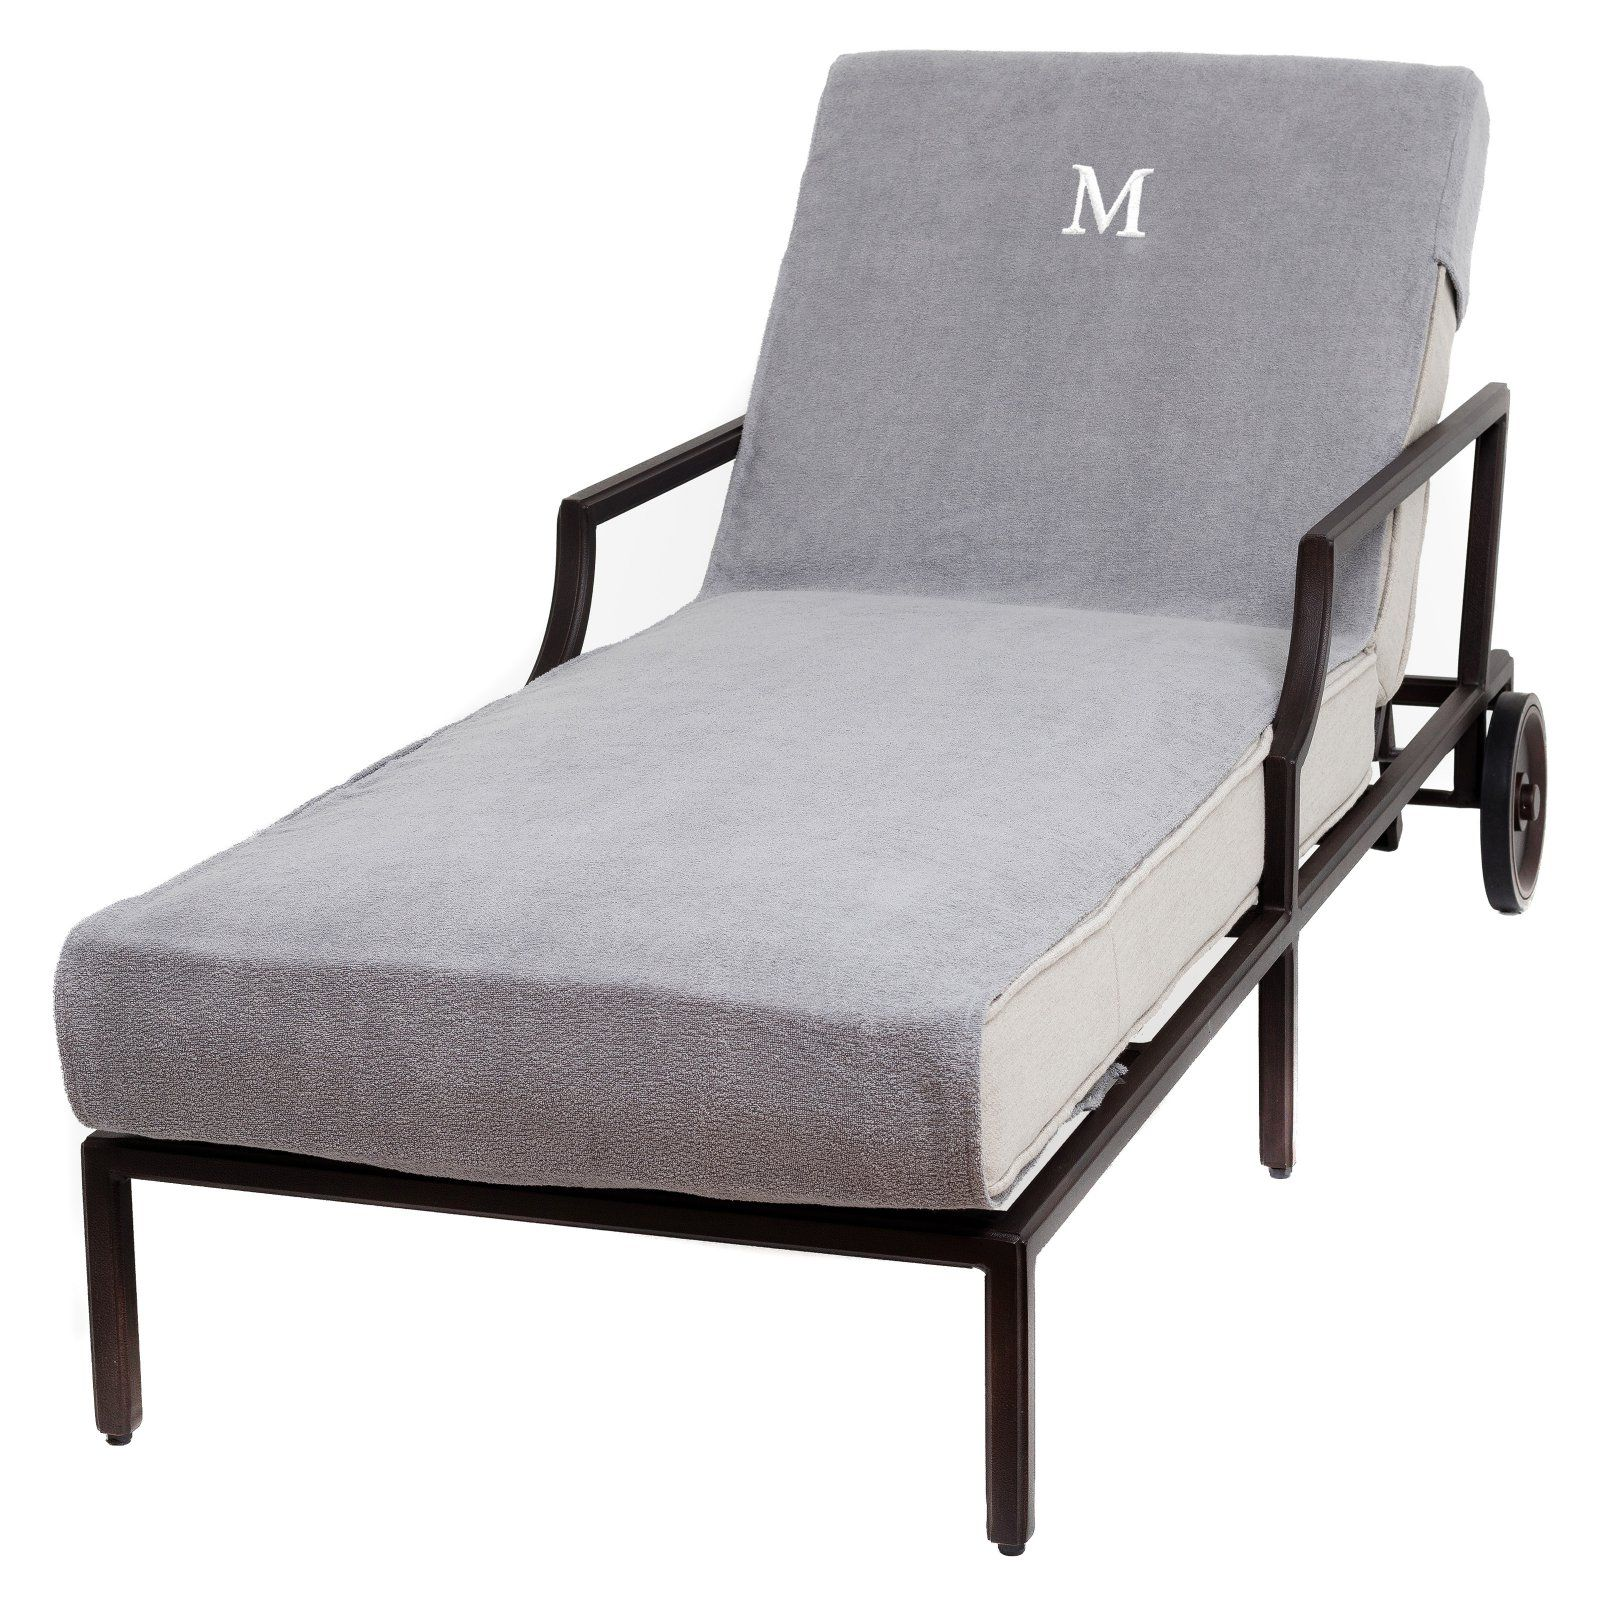 Linum Home Textiles Monogrammed Chaise Lounge Cover Patio Chaise Lounge Chaise Lounge Chaise Lounge Chair